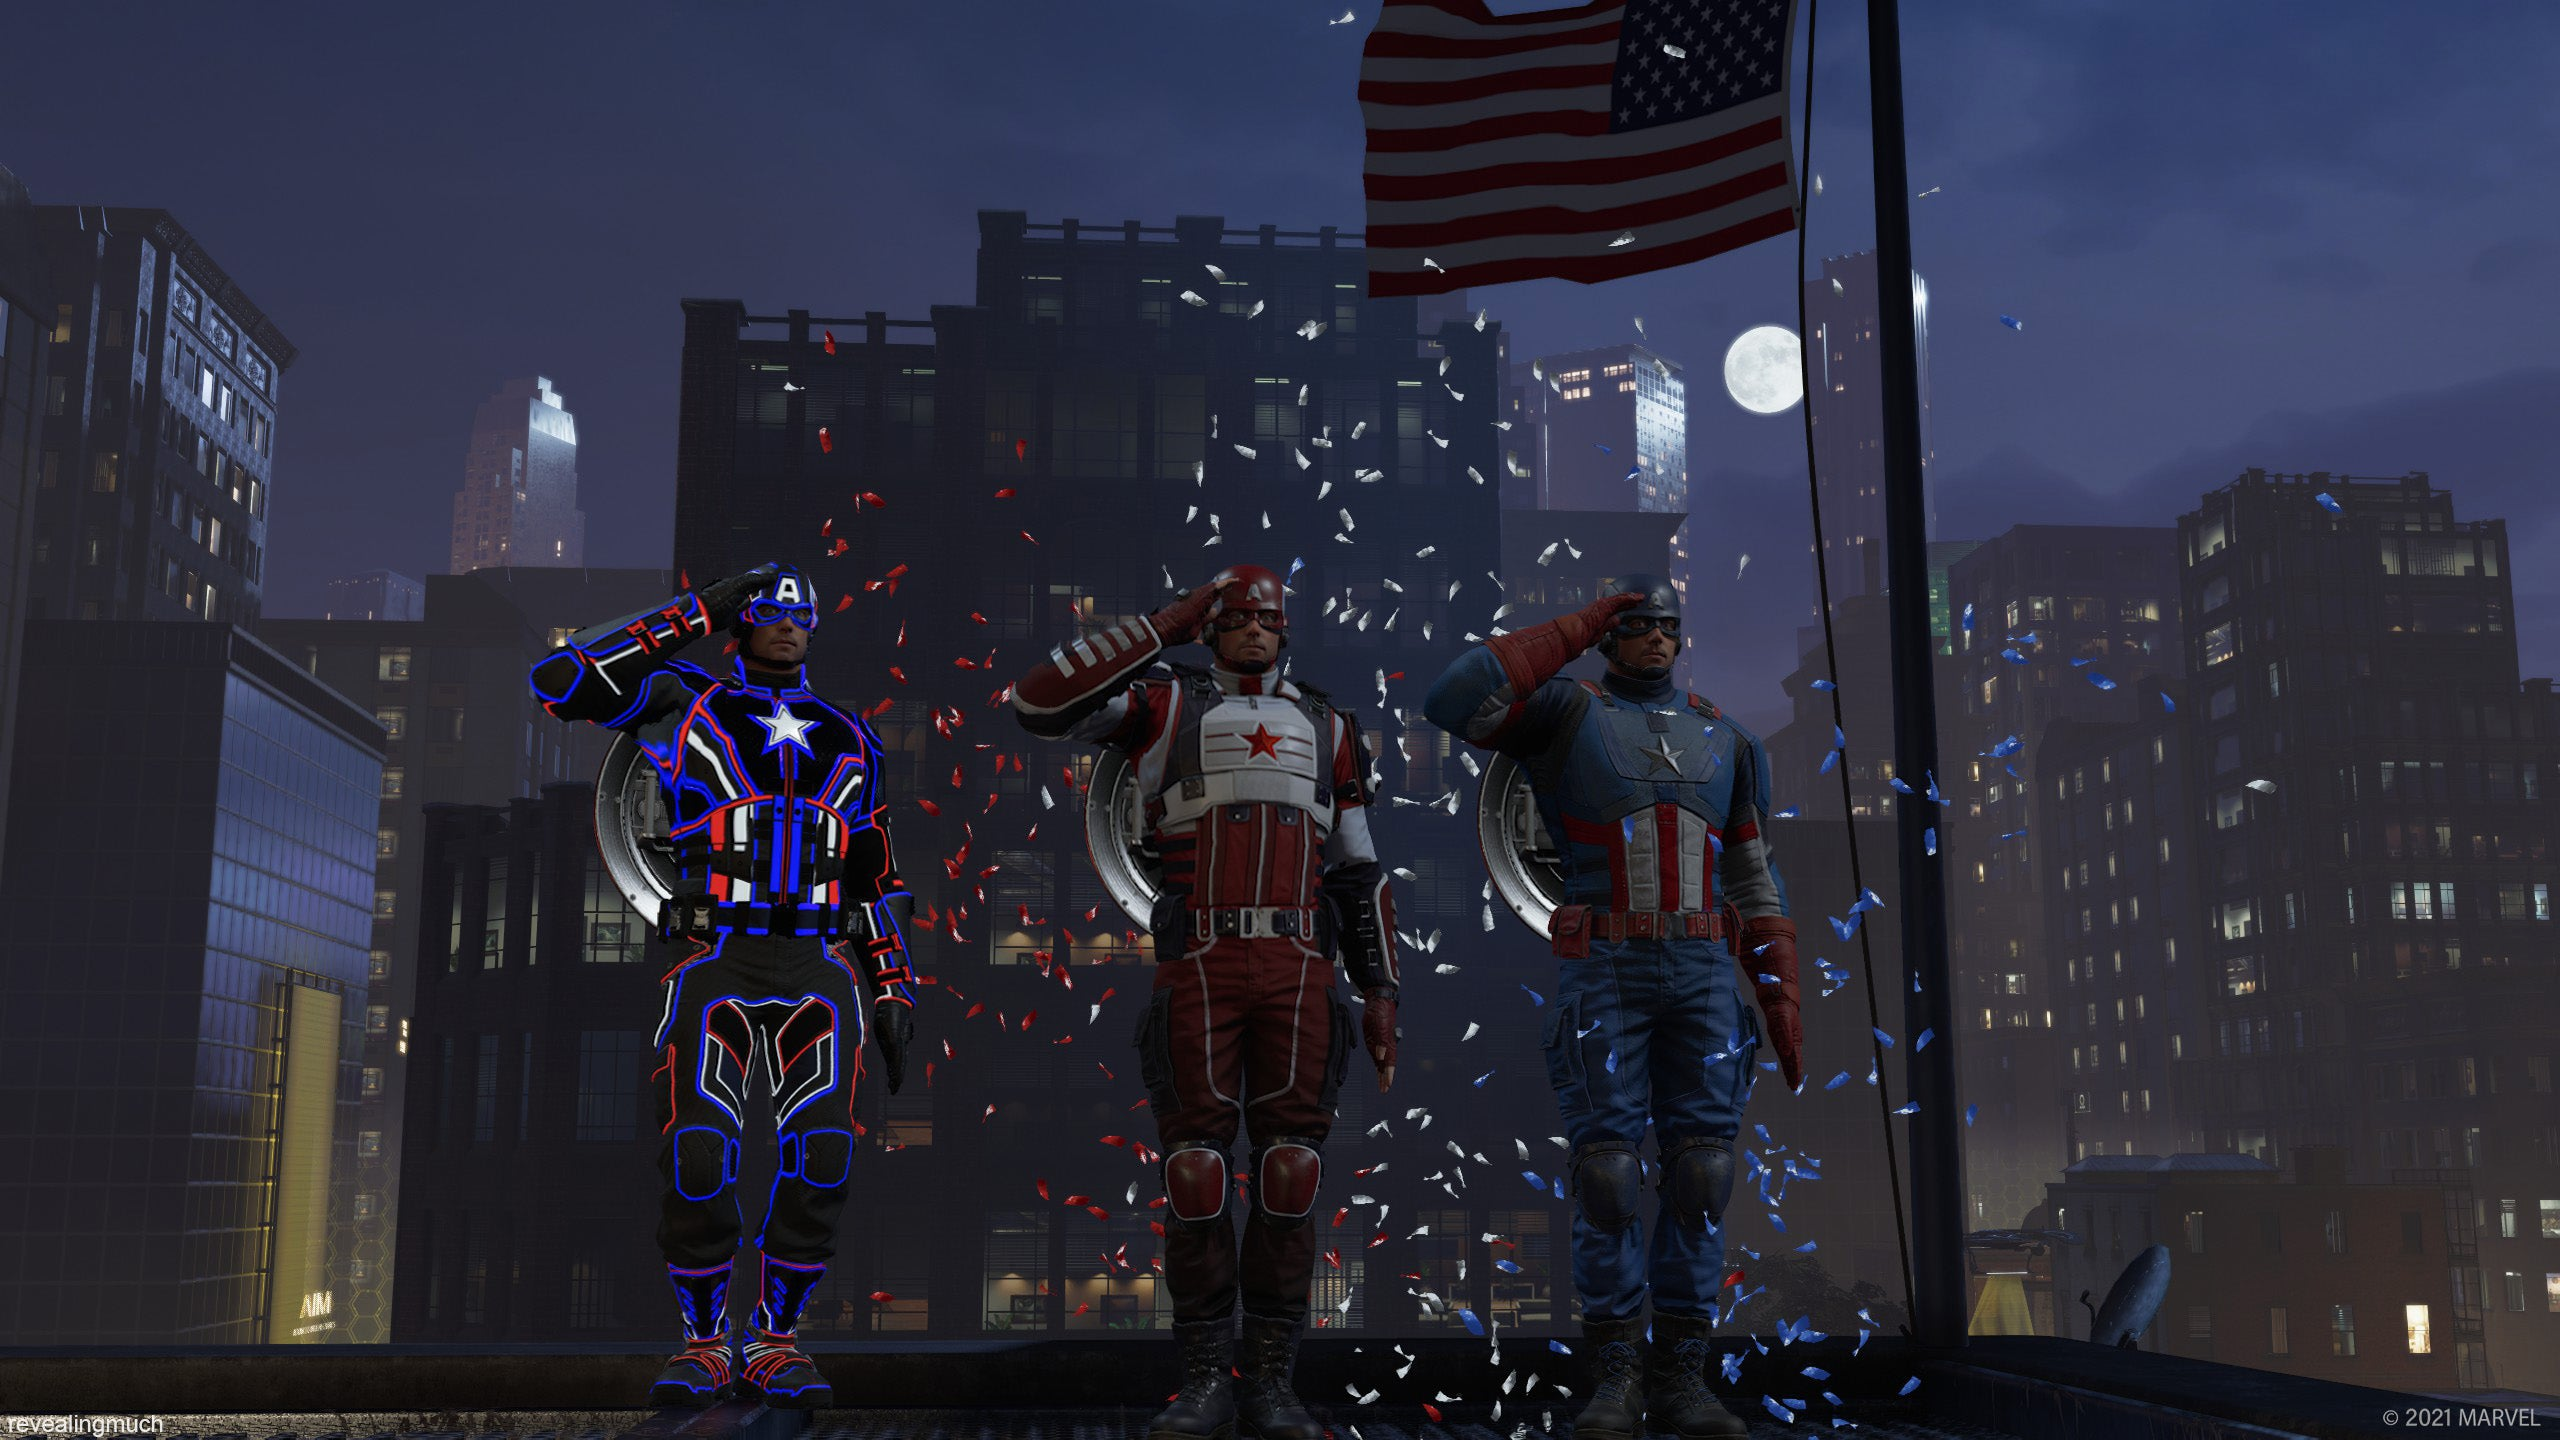 Three Captain Americas stand by an American flag atop a city building's rooftop, saluting as red white and blue confetti falls around them.